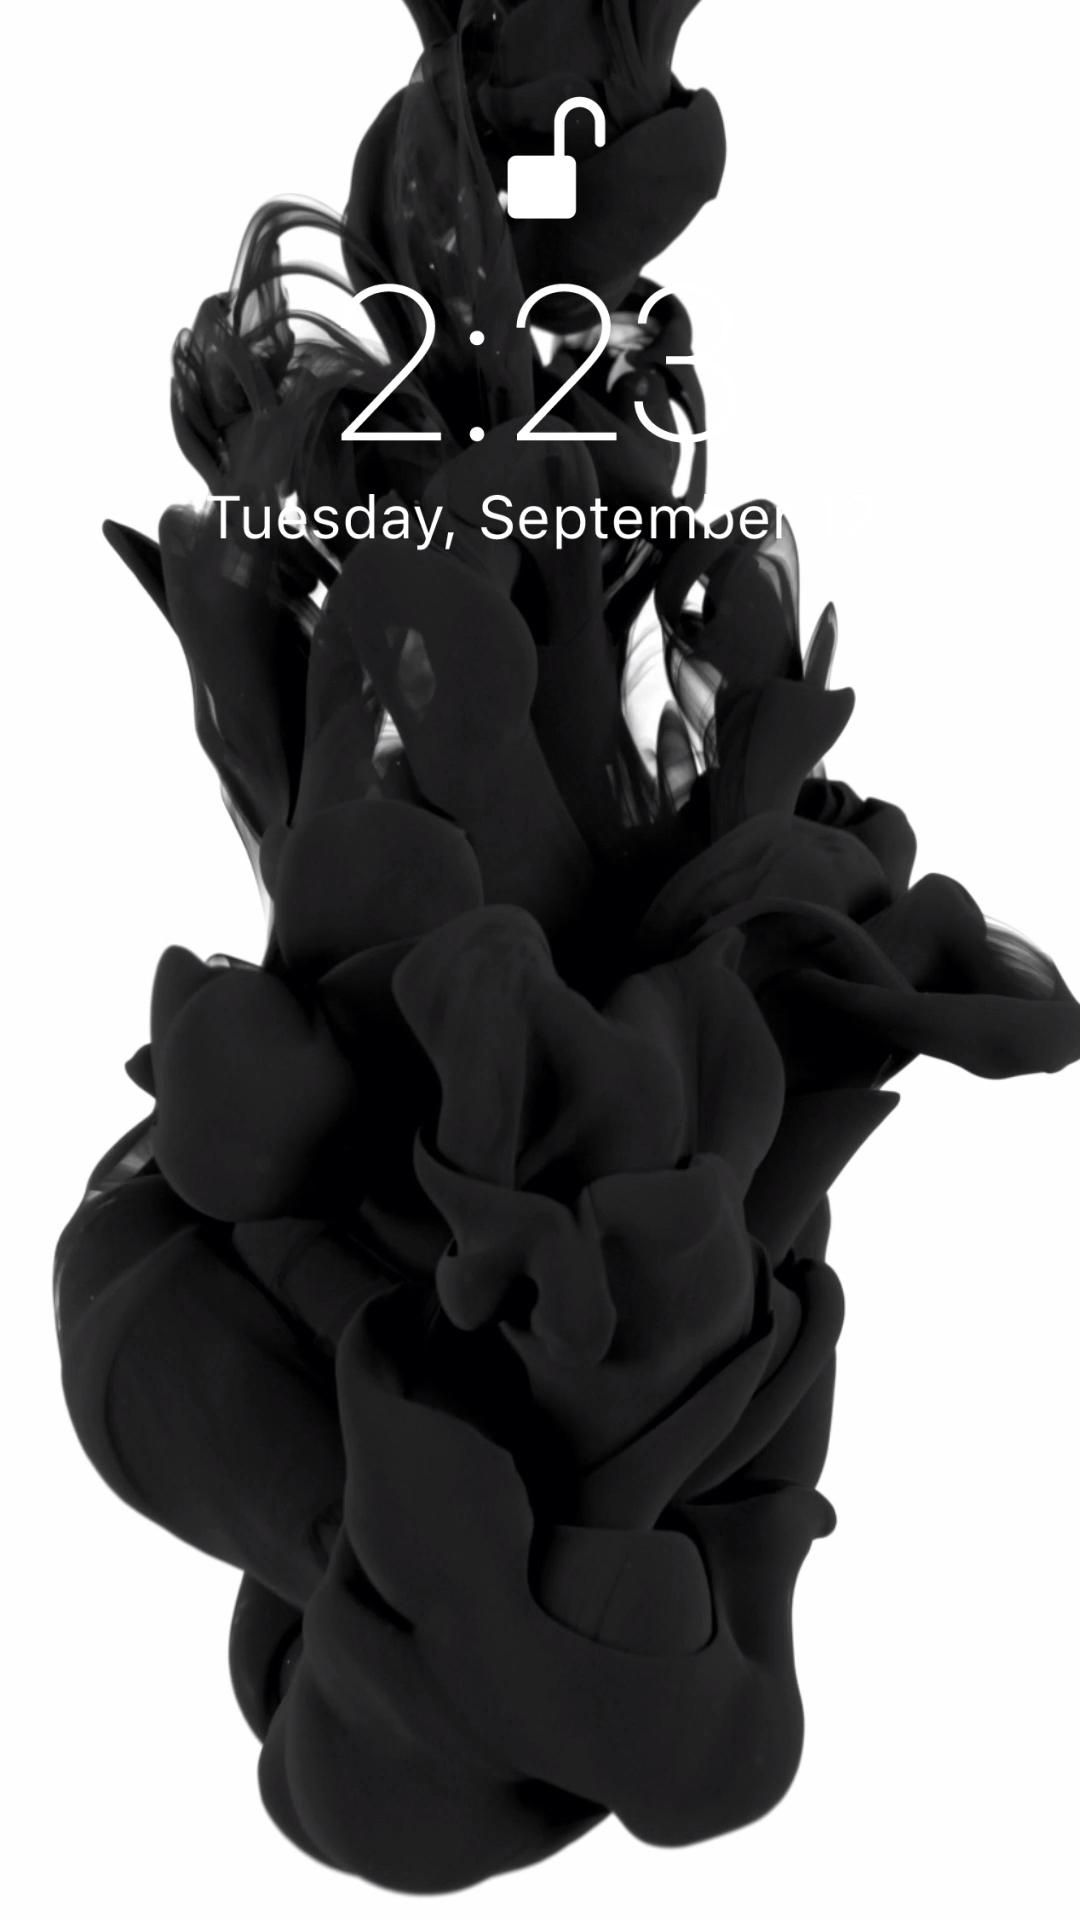 Download New Black Iphone X Wallpaper for iPhone XS Max Today